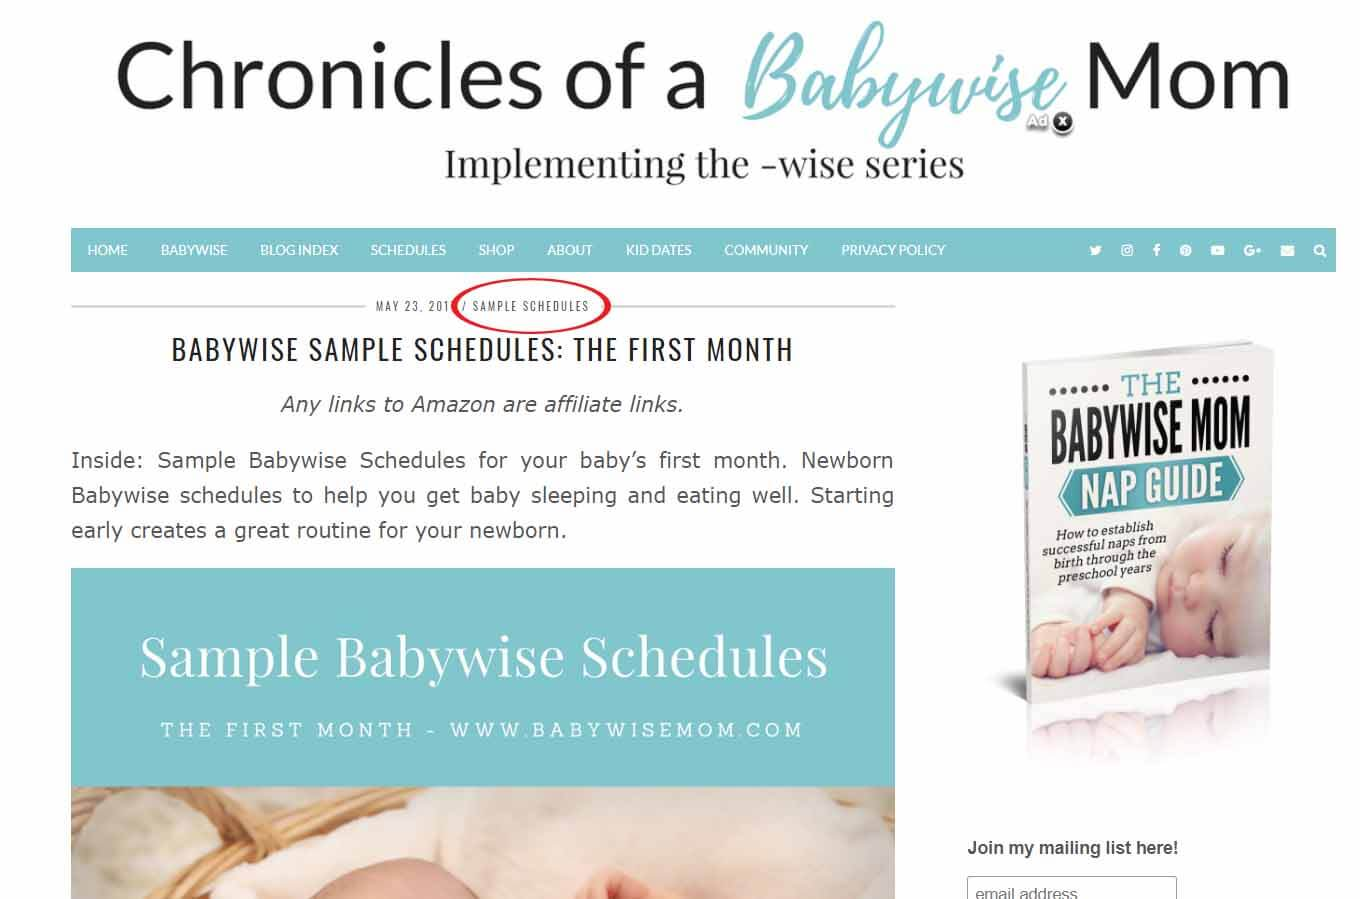 Search Chronicles of a Babywise Mom by category